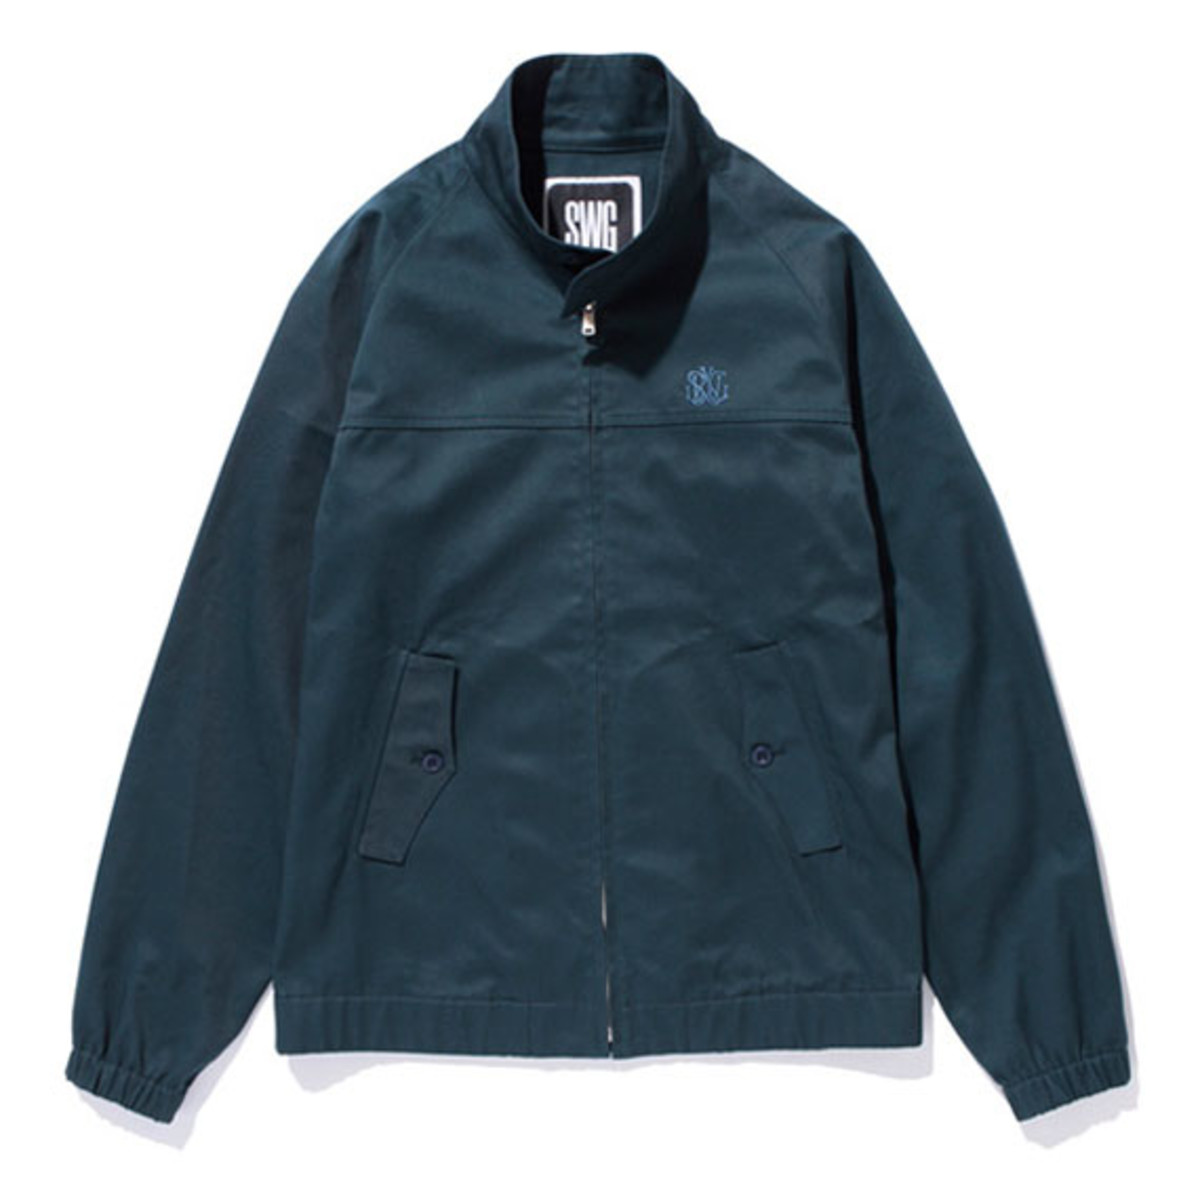 Cotton Swing Top Jacket Blue Green